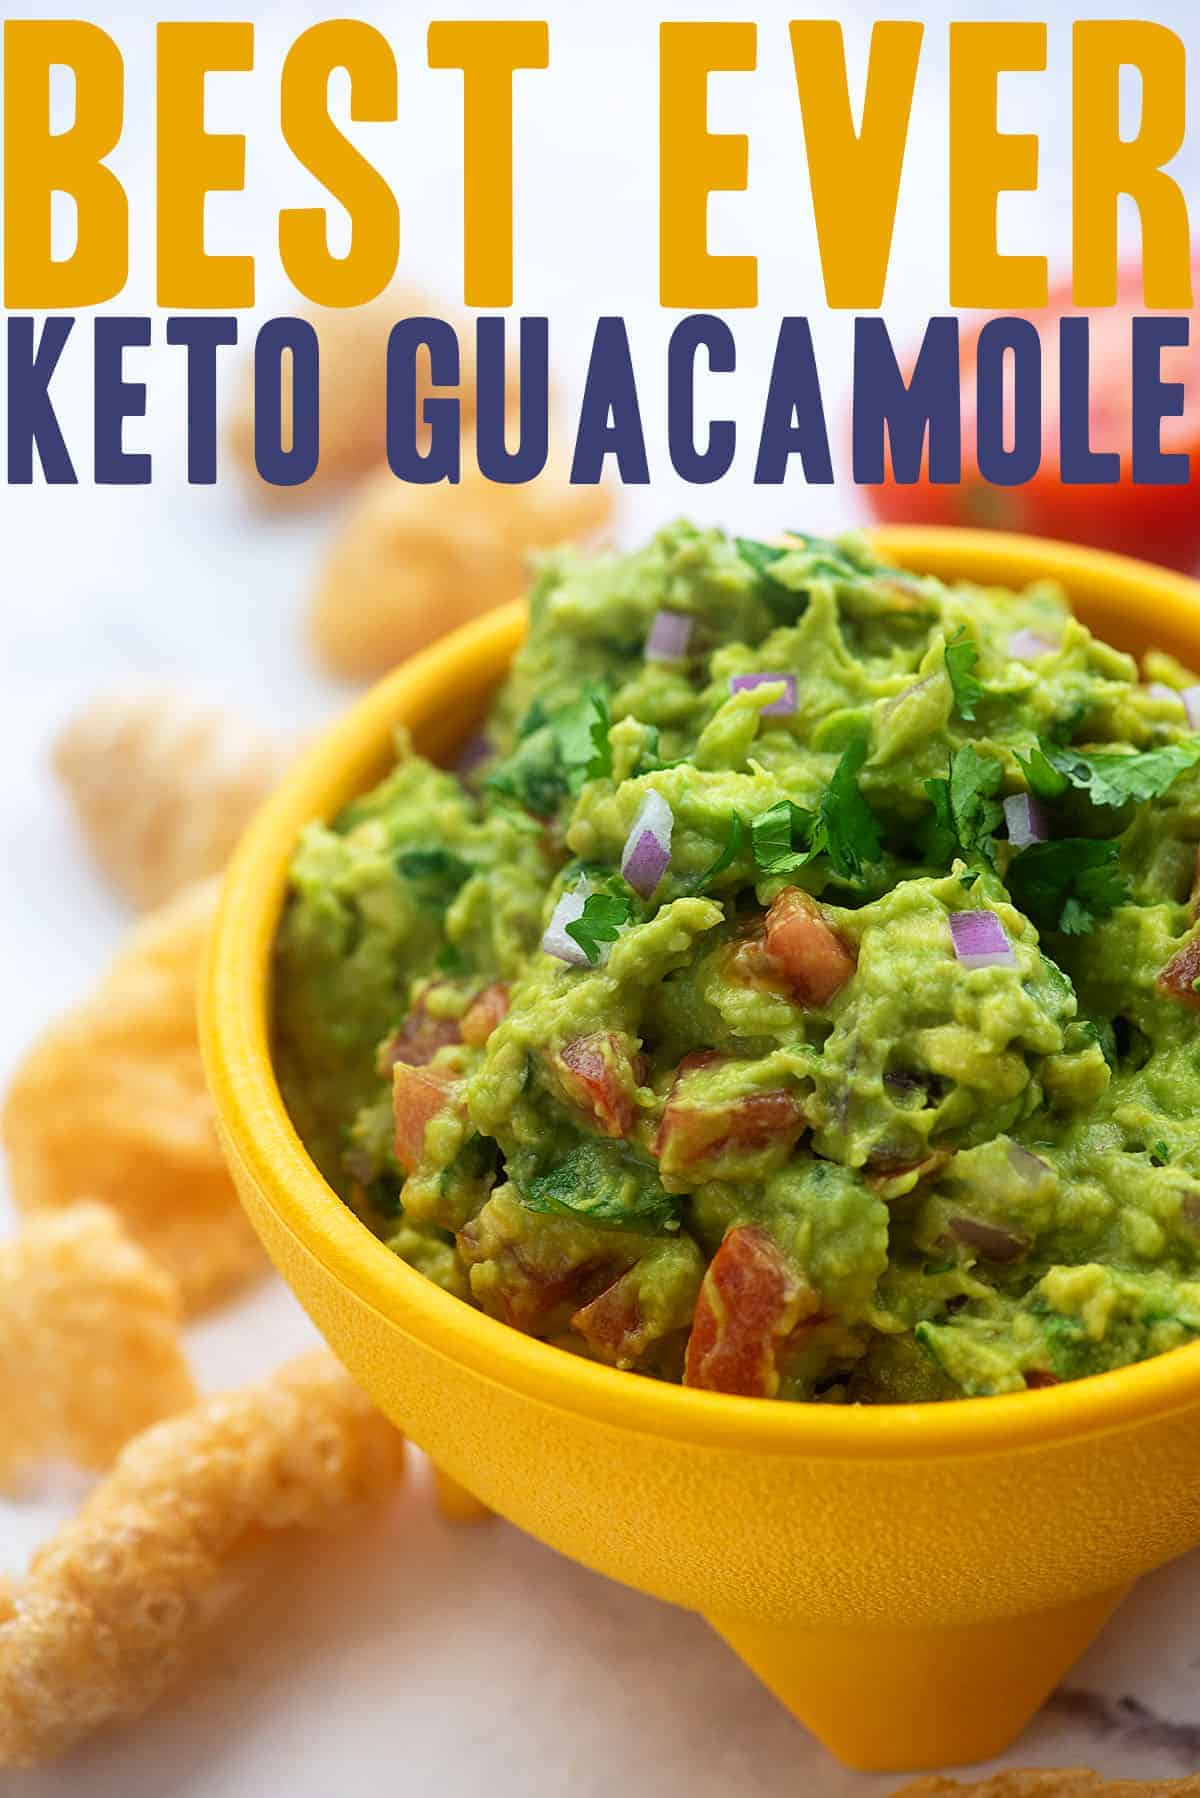 keto guacamole in yellow bowl